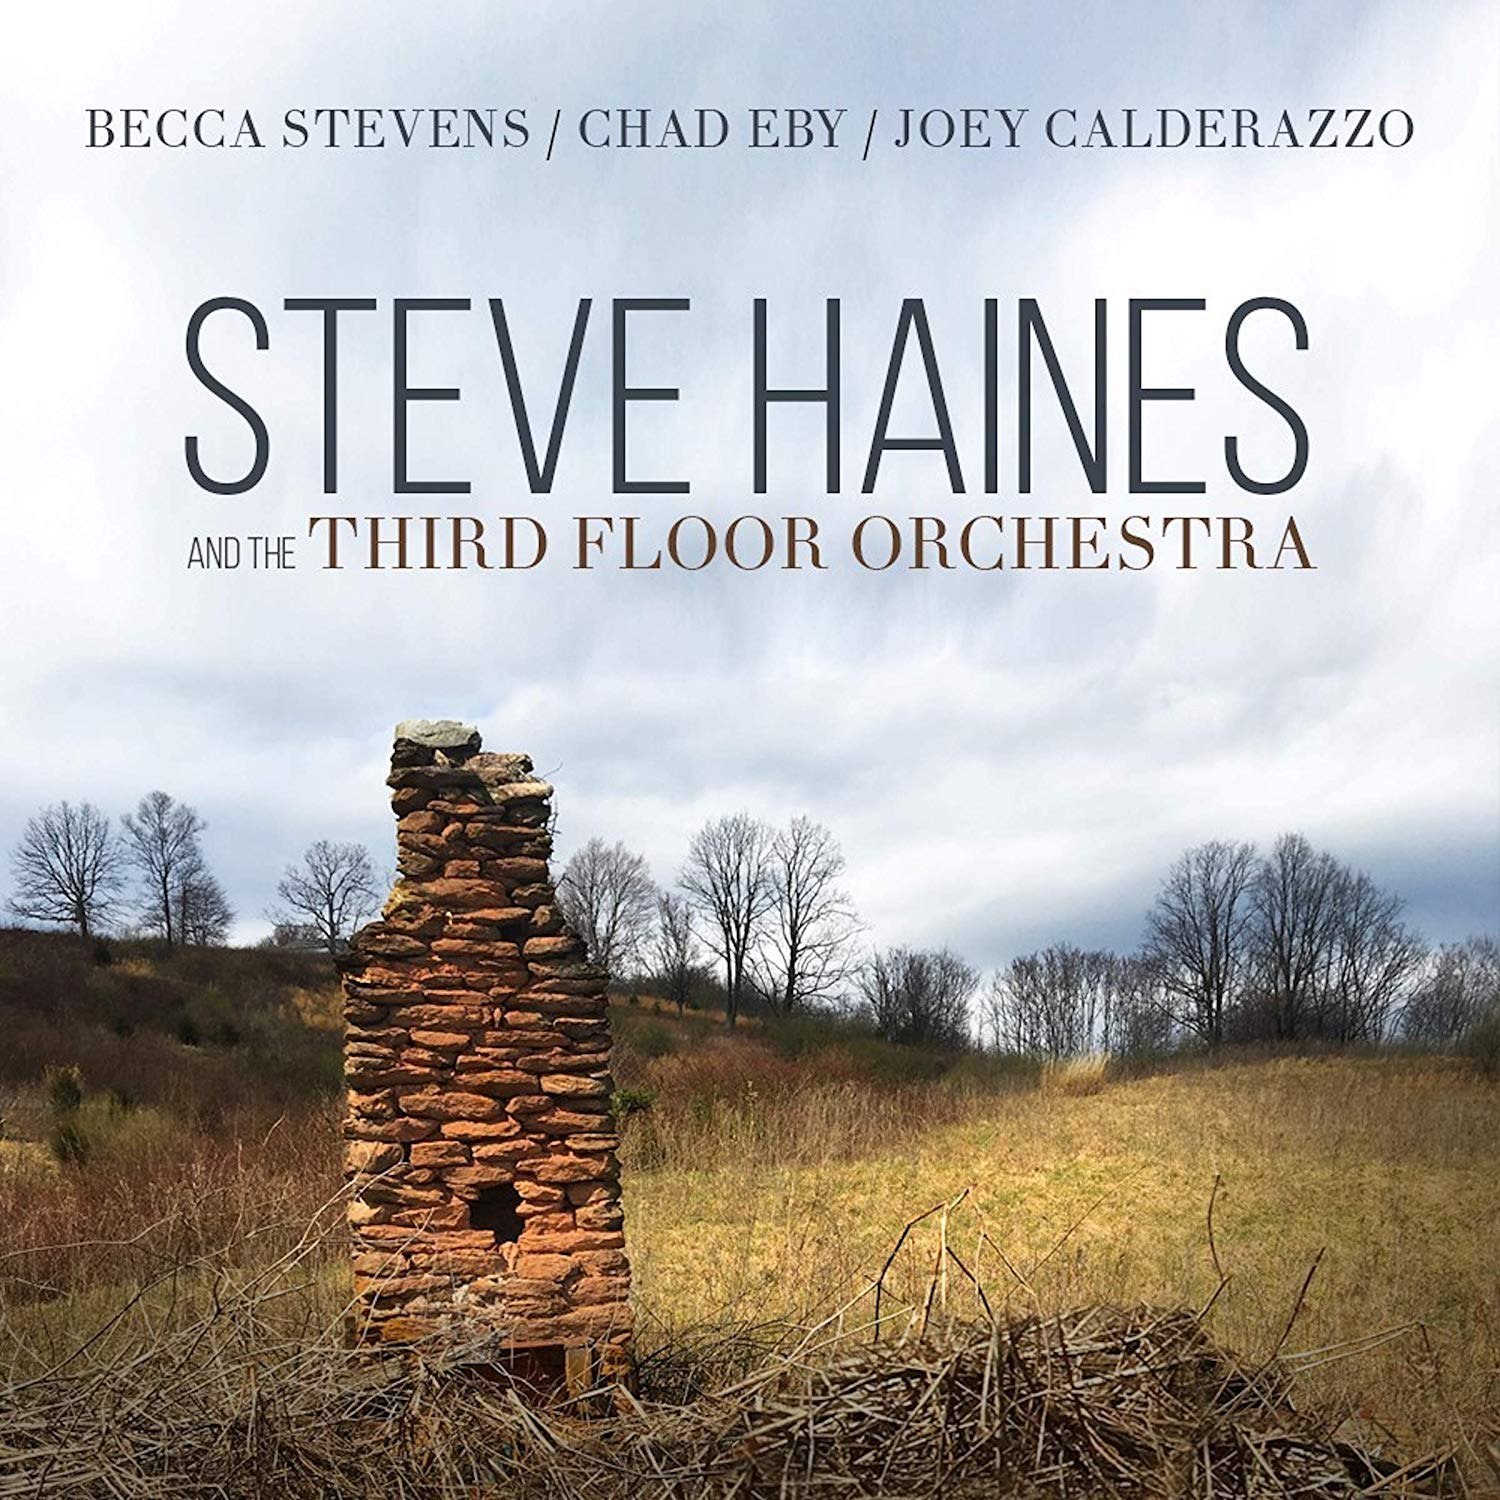 Steve Haines and the Third Floor Orchestra – Steve Haines and the Third Floor Orchestra